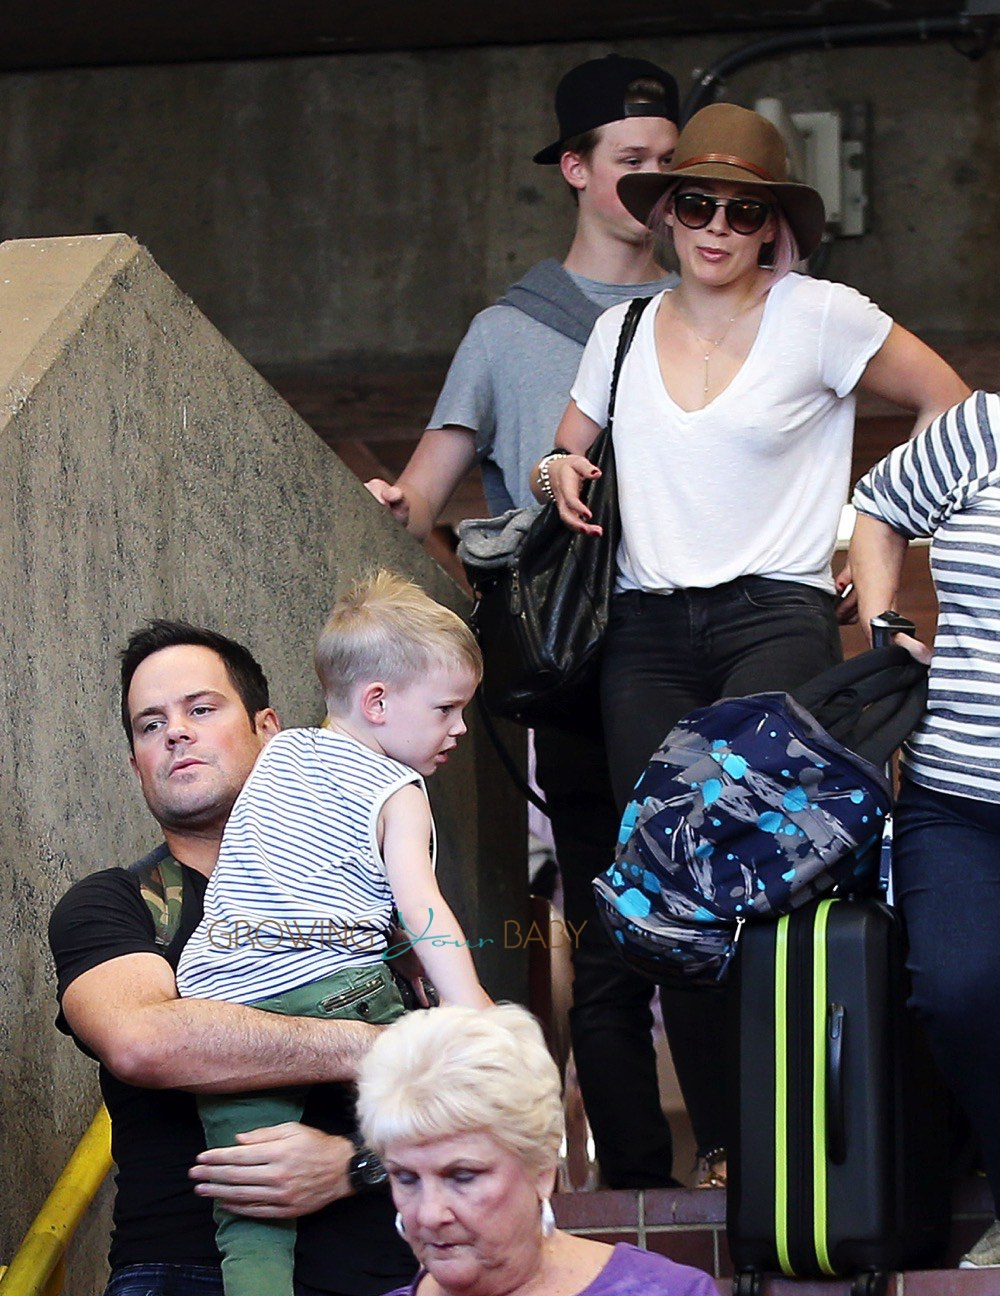 Hilary Duff Spotted At The Maui Airport | Babyrazzi